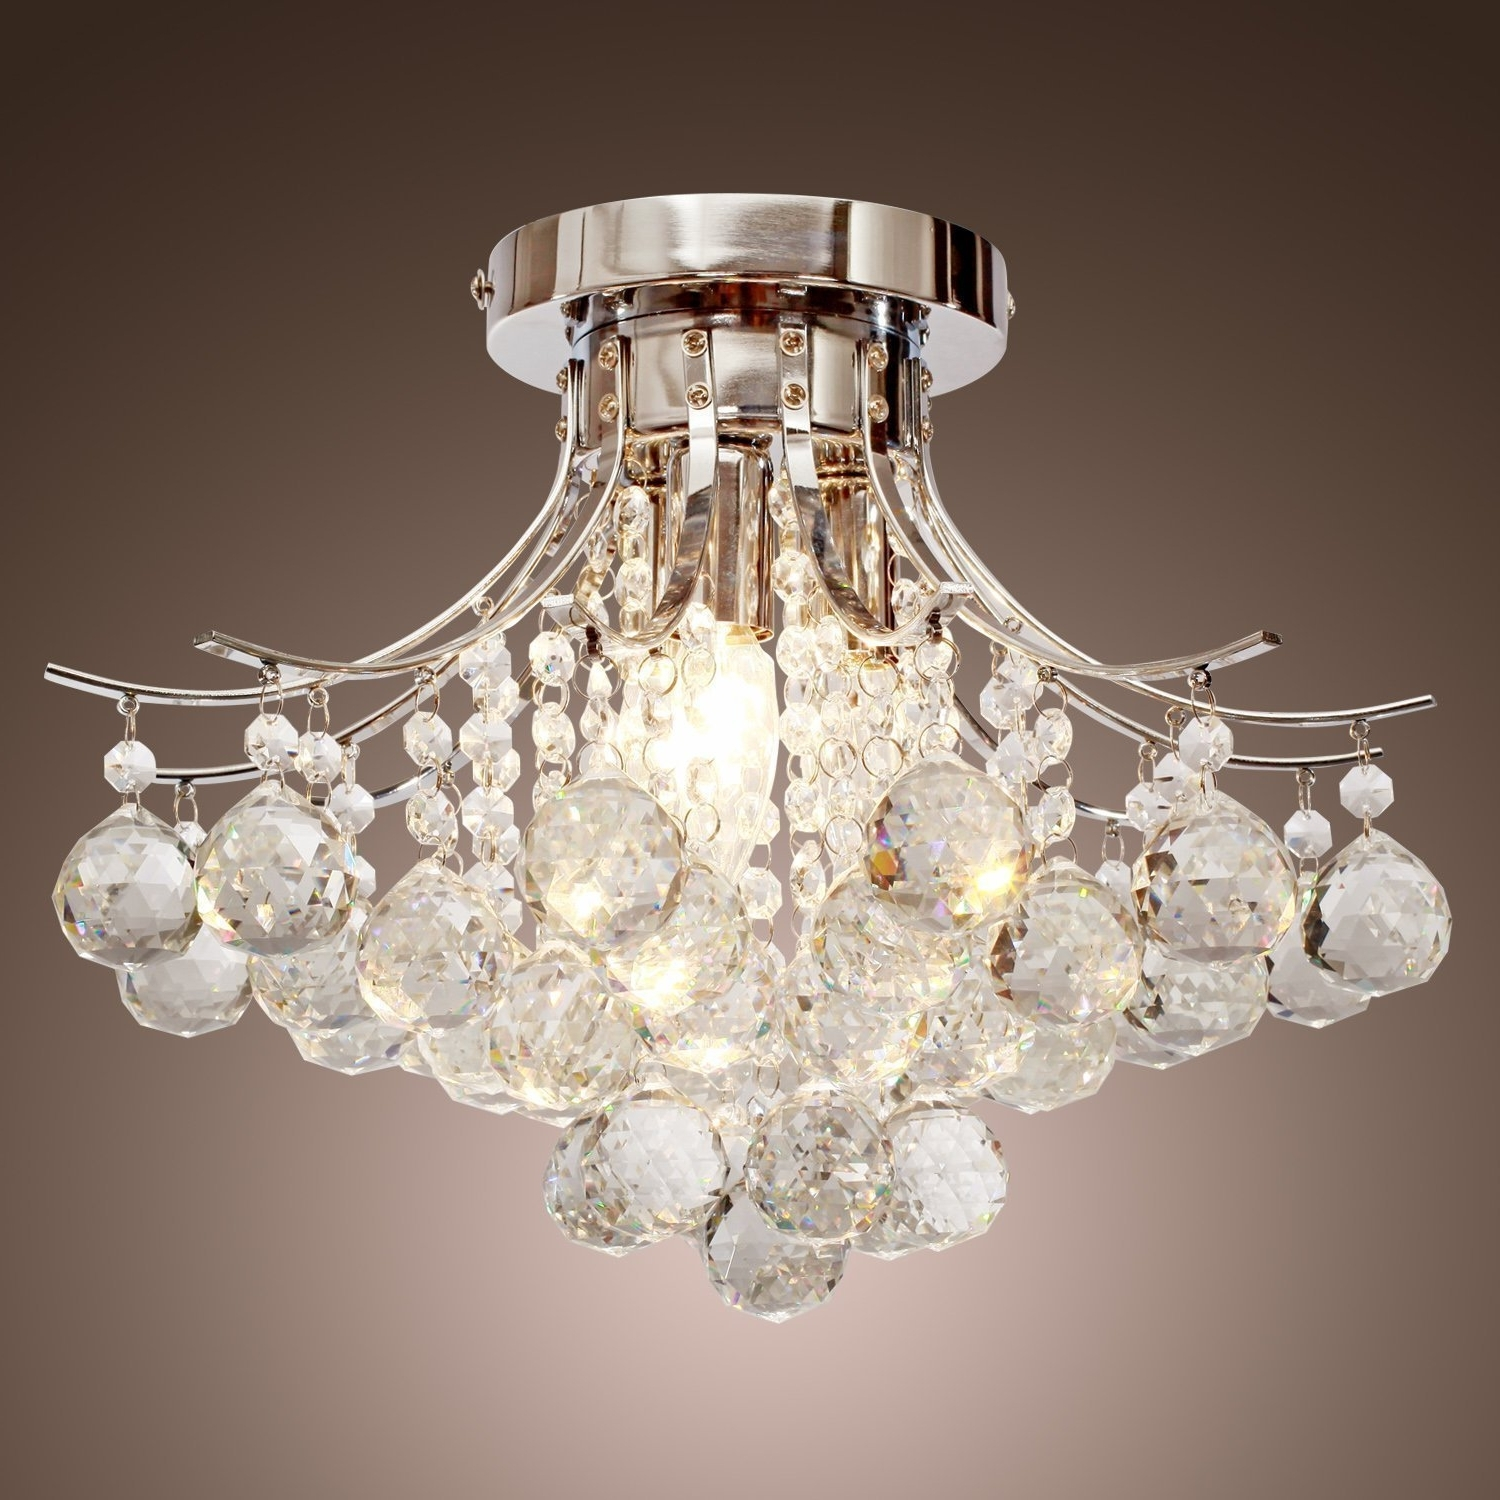 Chandelier Lights Pertaining To Most Recent Locoâ Chrome Finish Crystal Chandelier With 3 Lights, Mini Style (View 5 of 15)